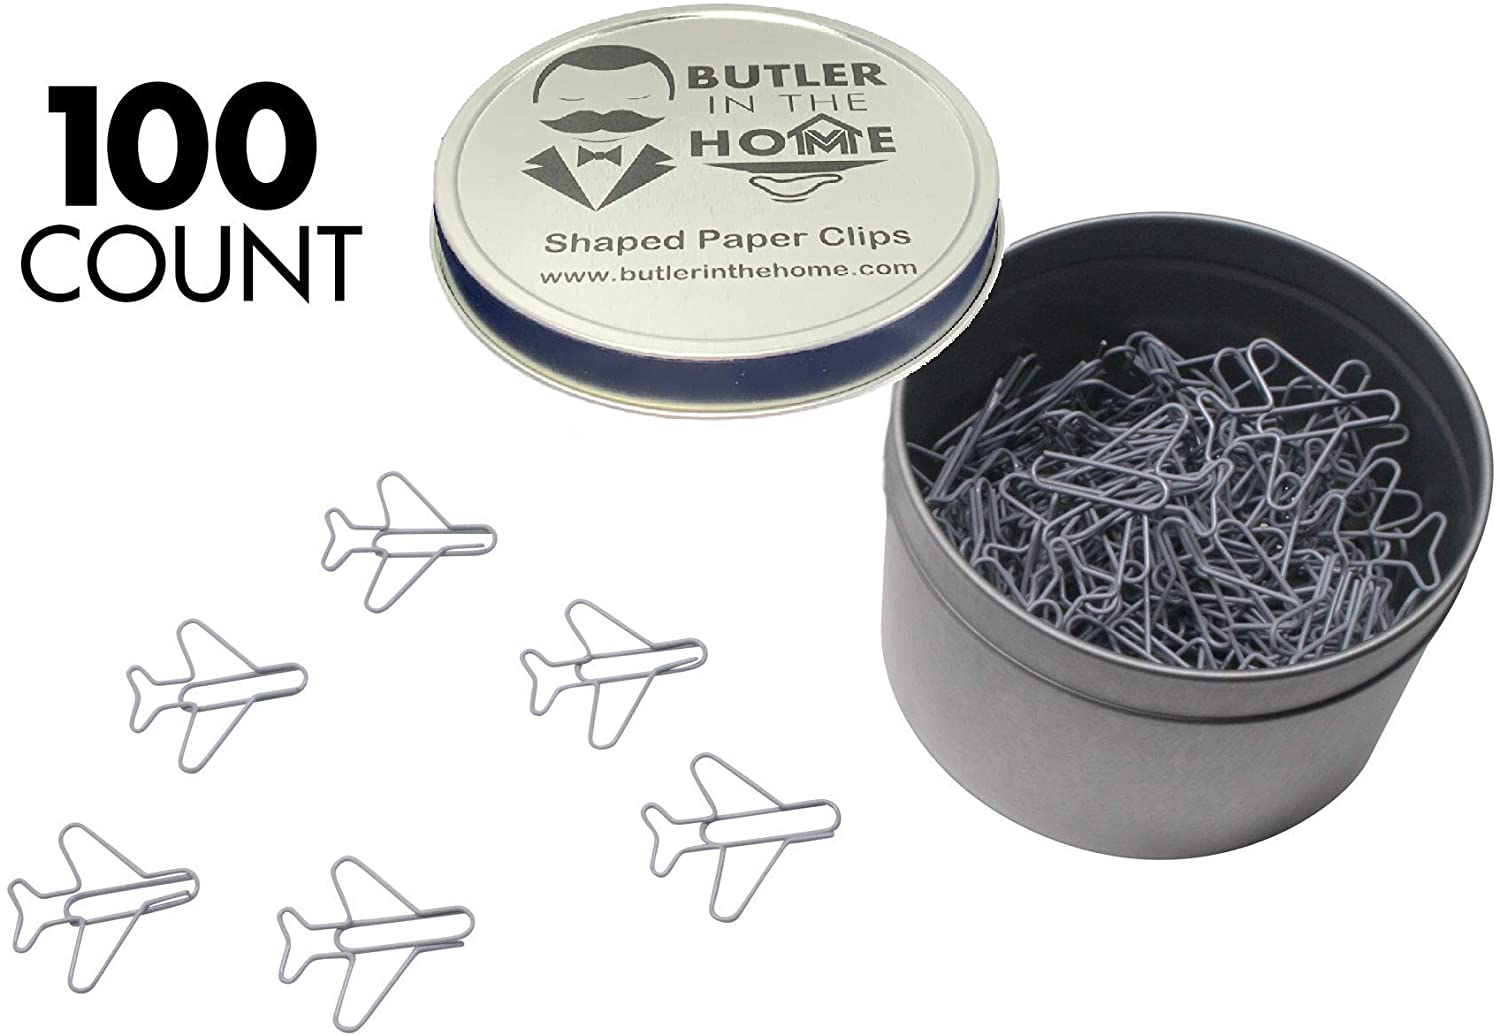 Butler in the Home 100 Count Airplane Shaped Paper Clips Great for Paper Clip Collectors or Office Gift - Comes in Round Tin with Lid and Gift Box - (Gray)